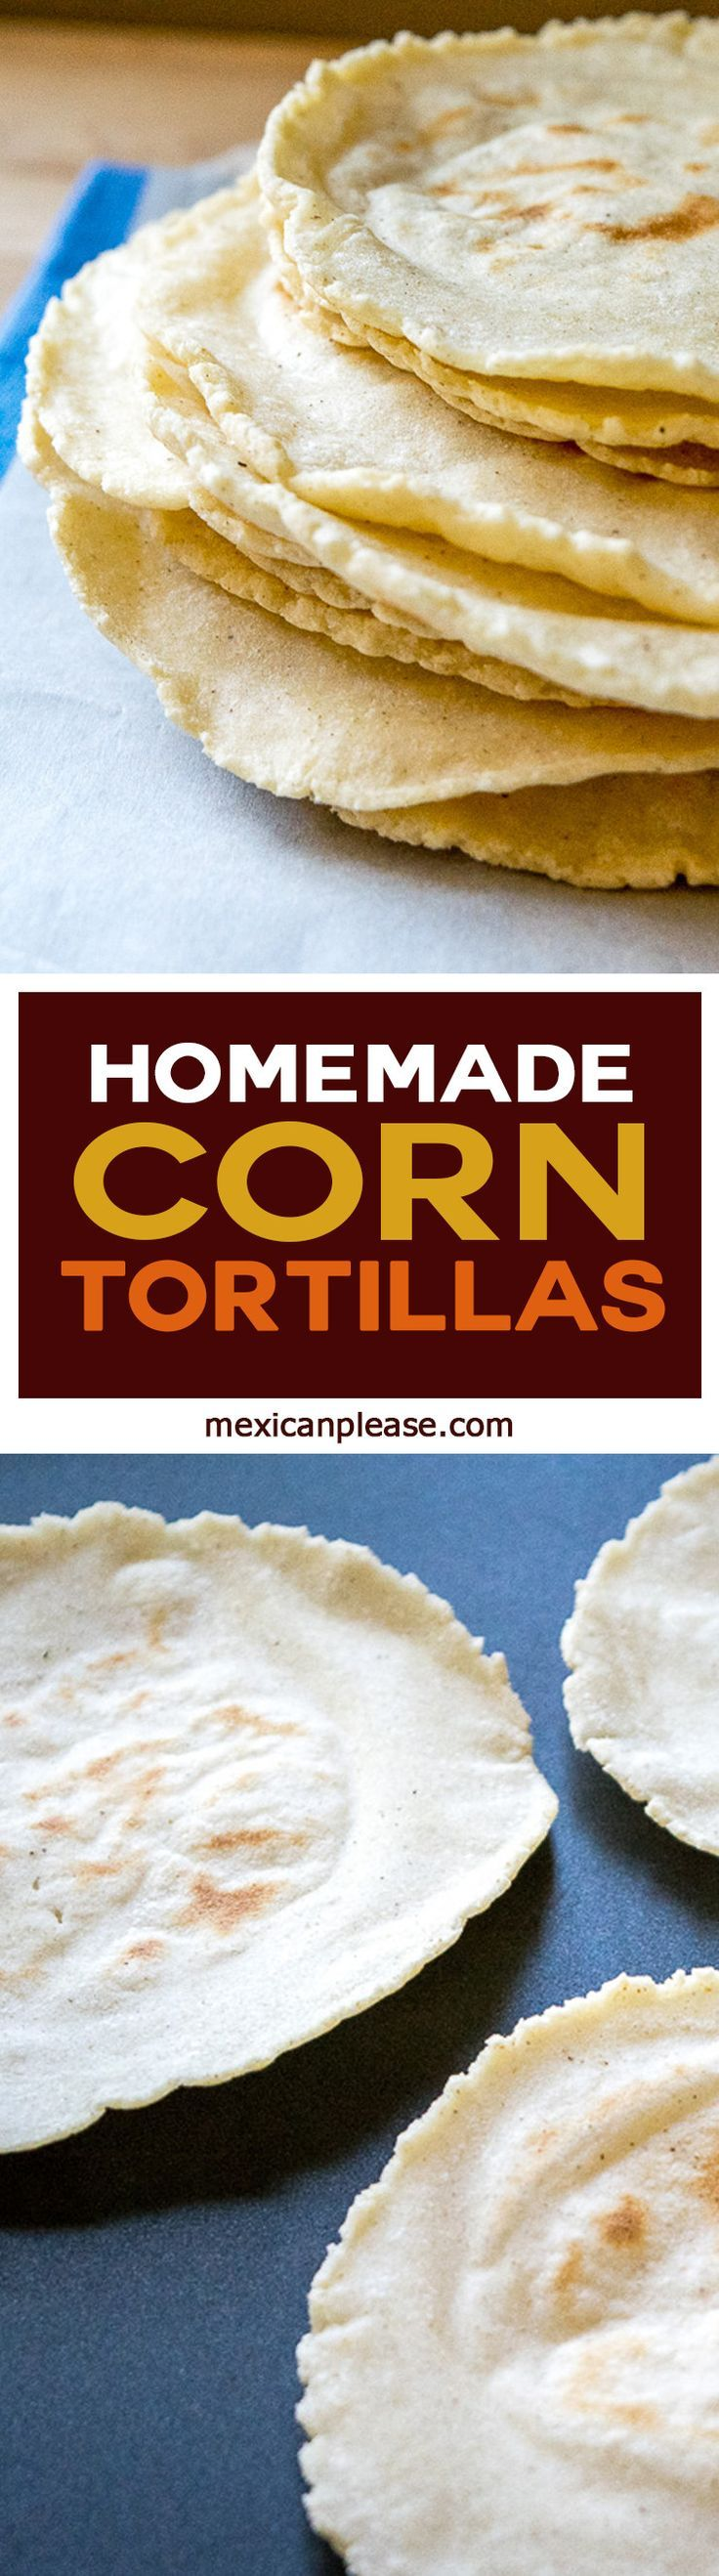 Ahh tortillas, the cradle of Mexican cuisine.  It's surprisingly easy to make a batch of fresh, homemade corn tortillas that might just convert you over for life.  So good!  http://mexicanplease.com